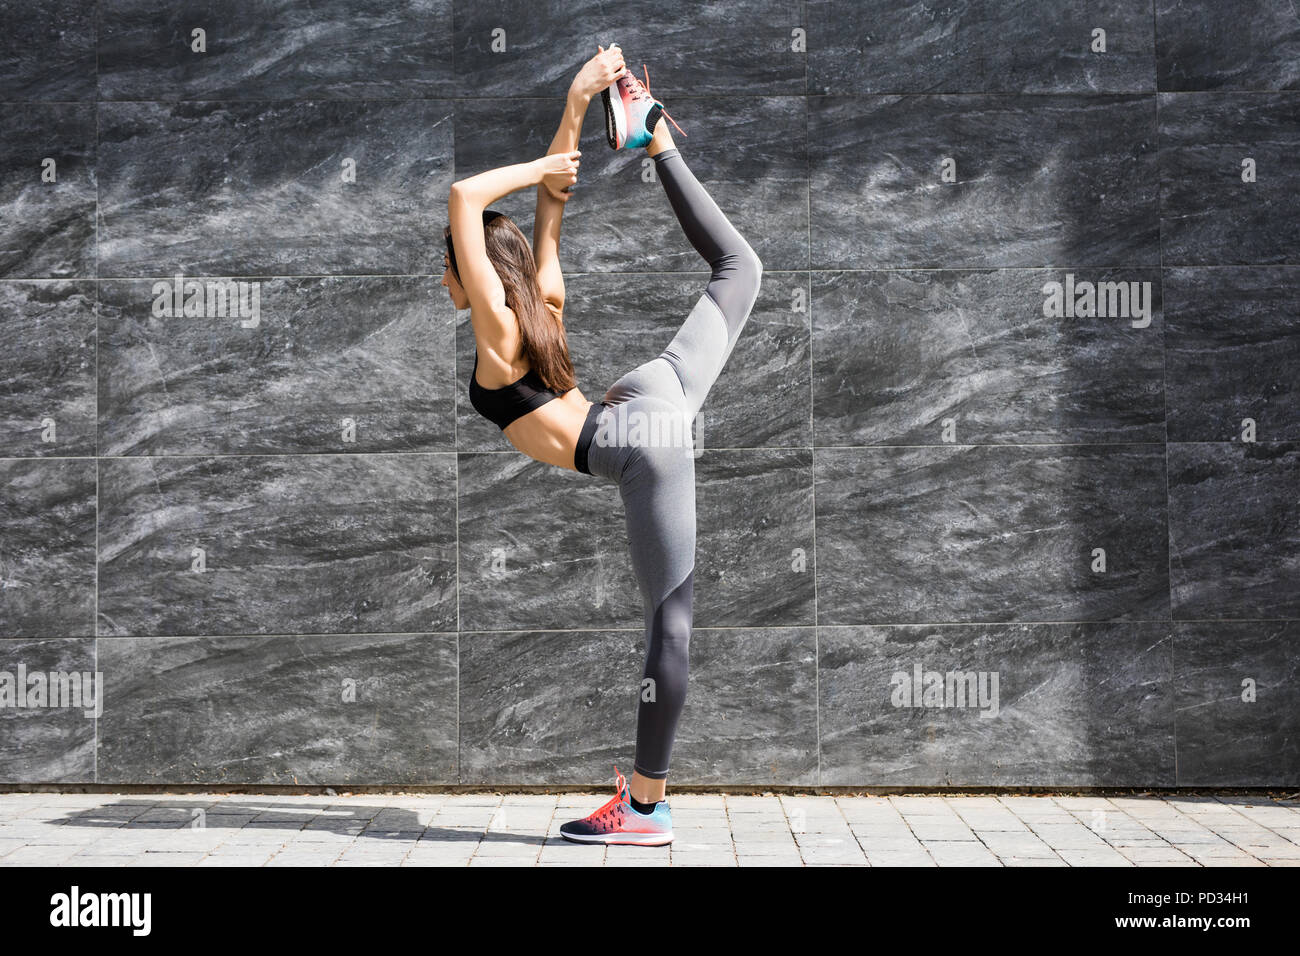 Young fitness woman doing warm-up exercise before running stretching her leg by performing knee to chest stretch on the city street. Sporty athlete pr - Stock Image